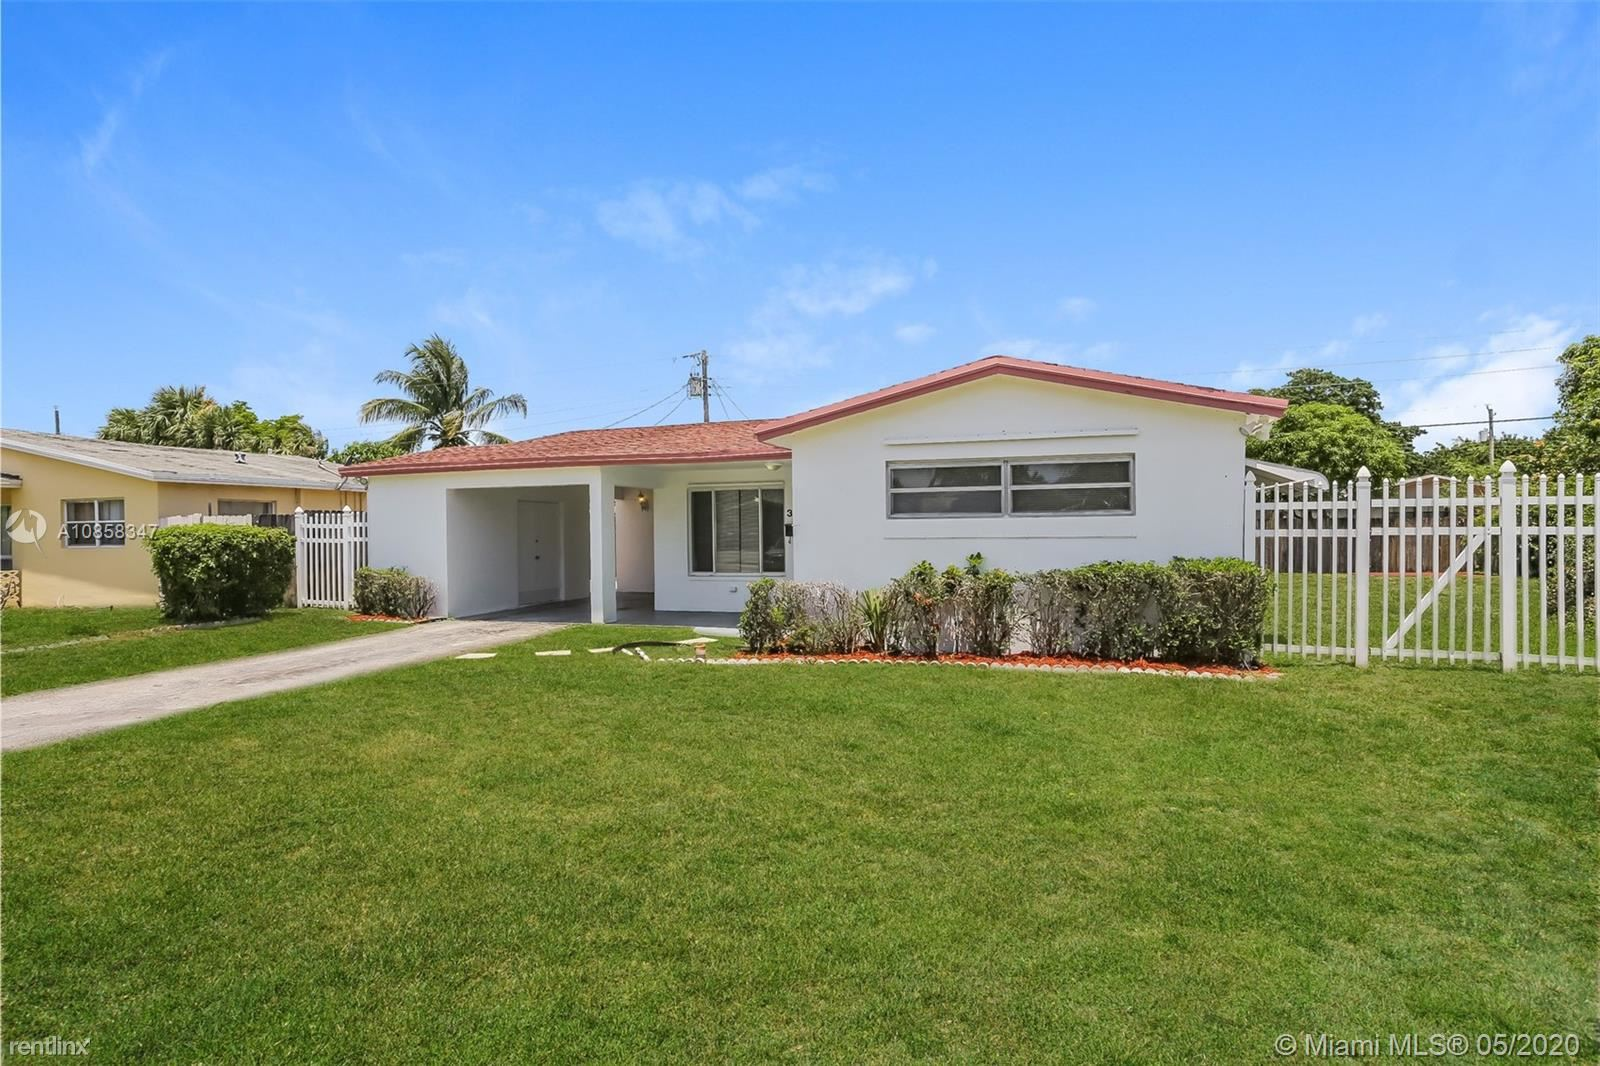 3611 NW 36th St, Lauderdale Lakes, FL - $1,845